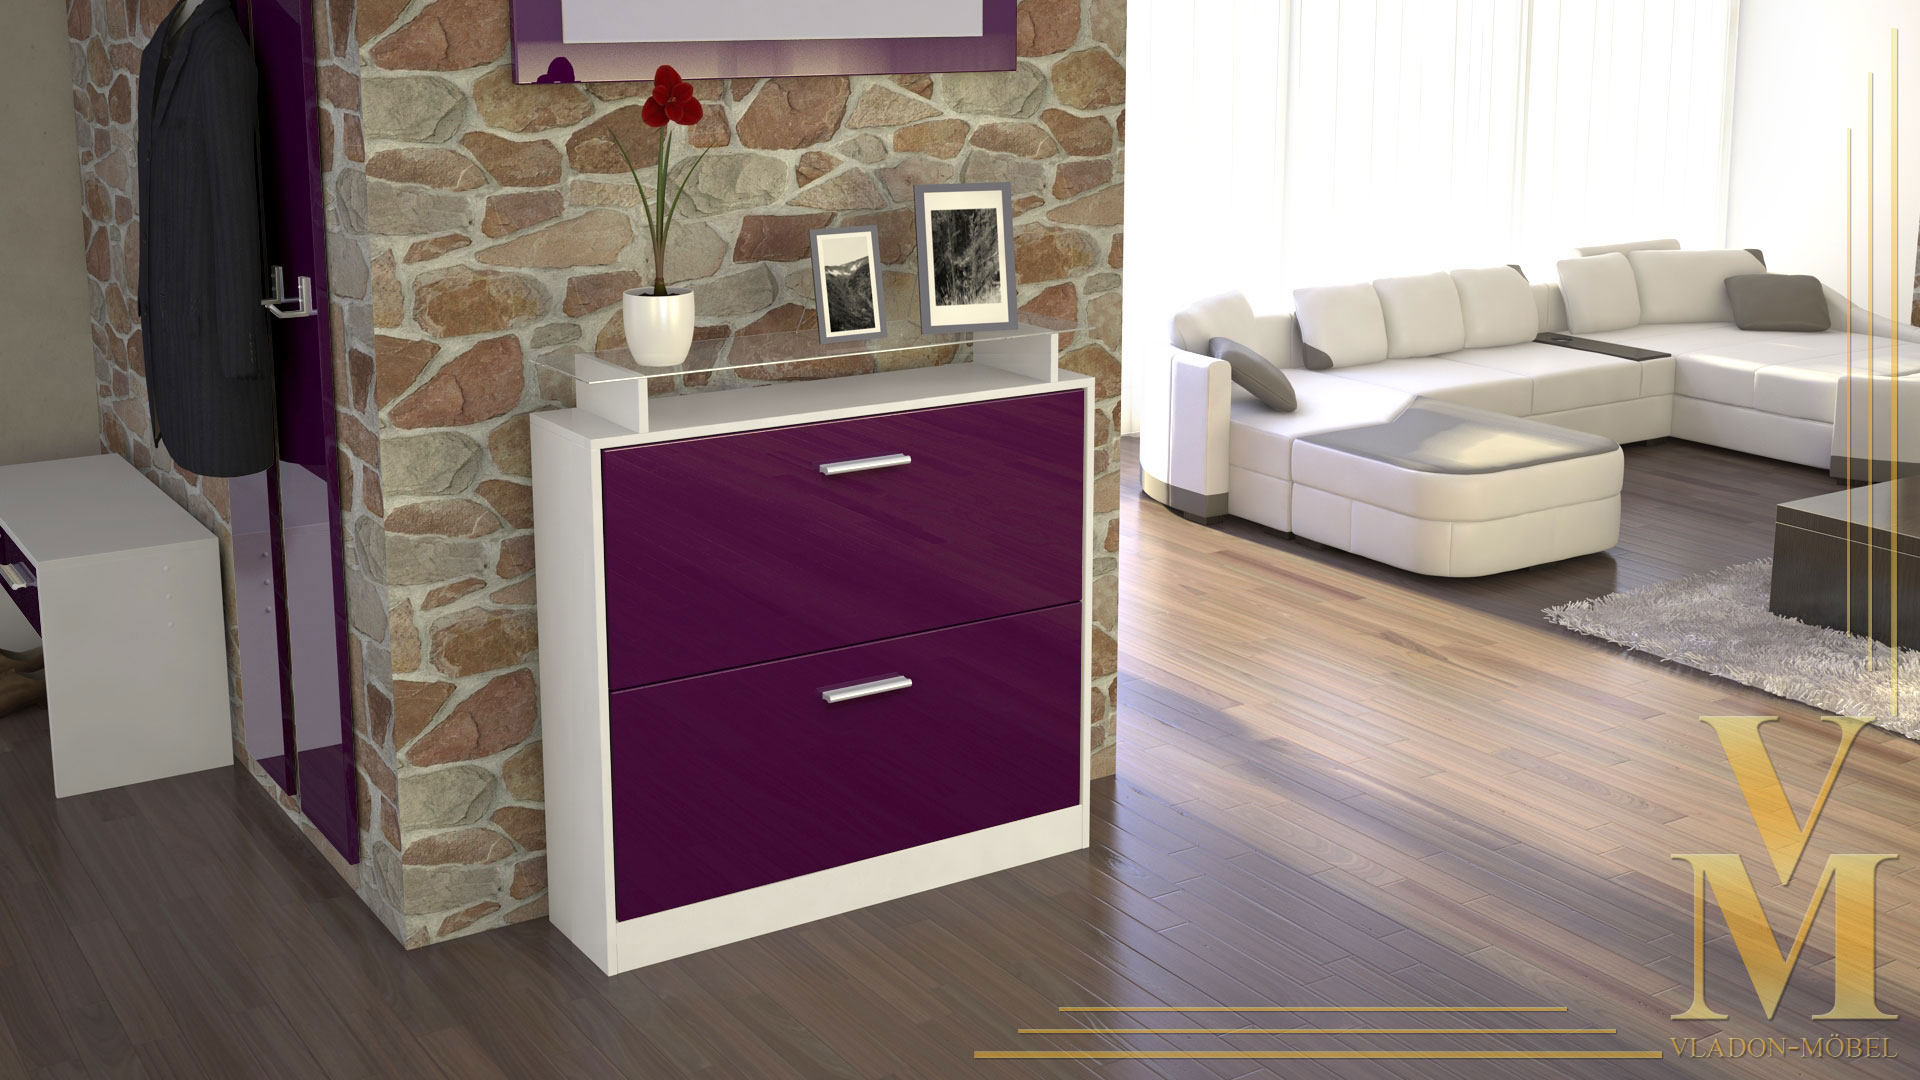 schuhschrank schuhkipper dielen flur schrank roma wei hochglanz naturt ne ebay. Black Bedroom Furniture Sets. Home Design Ideas